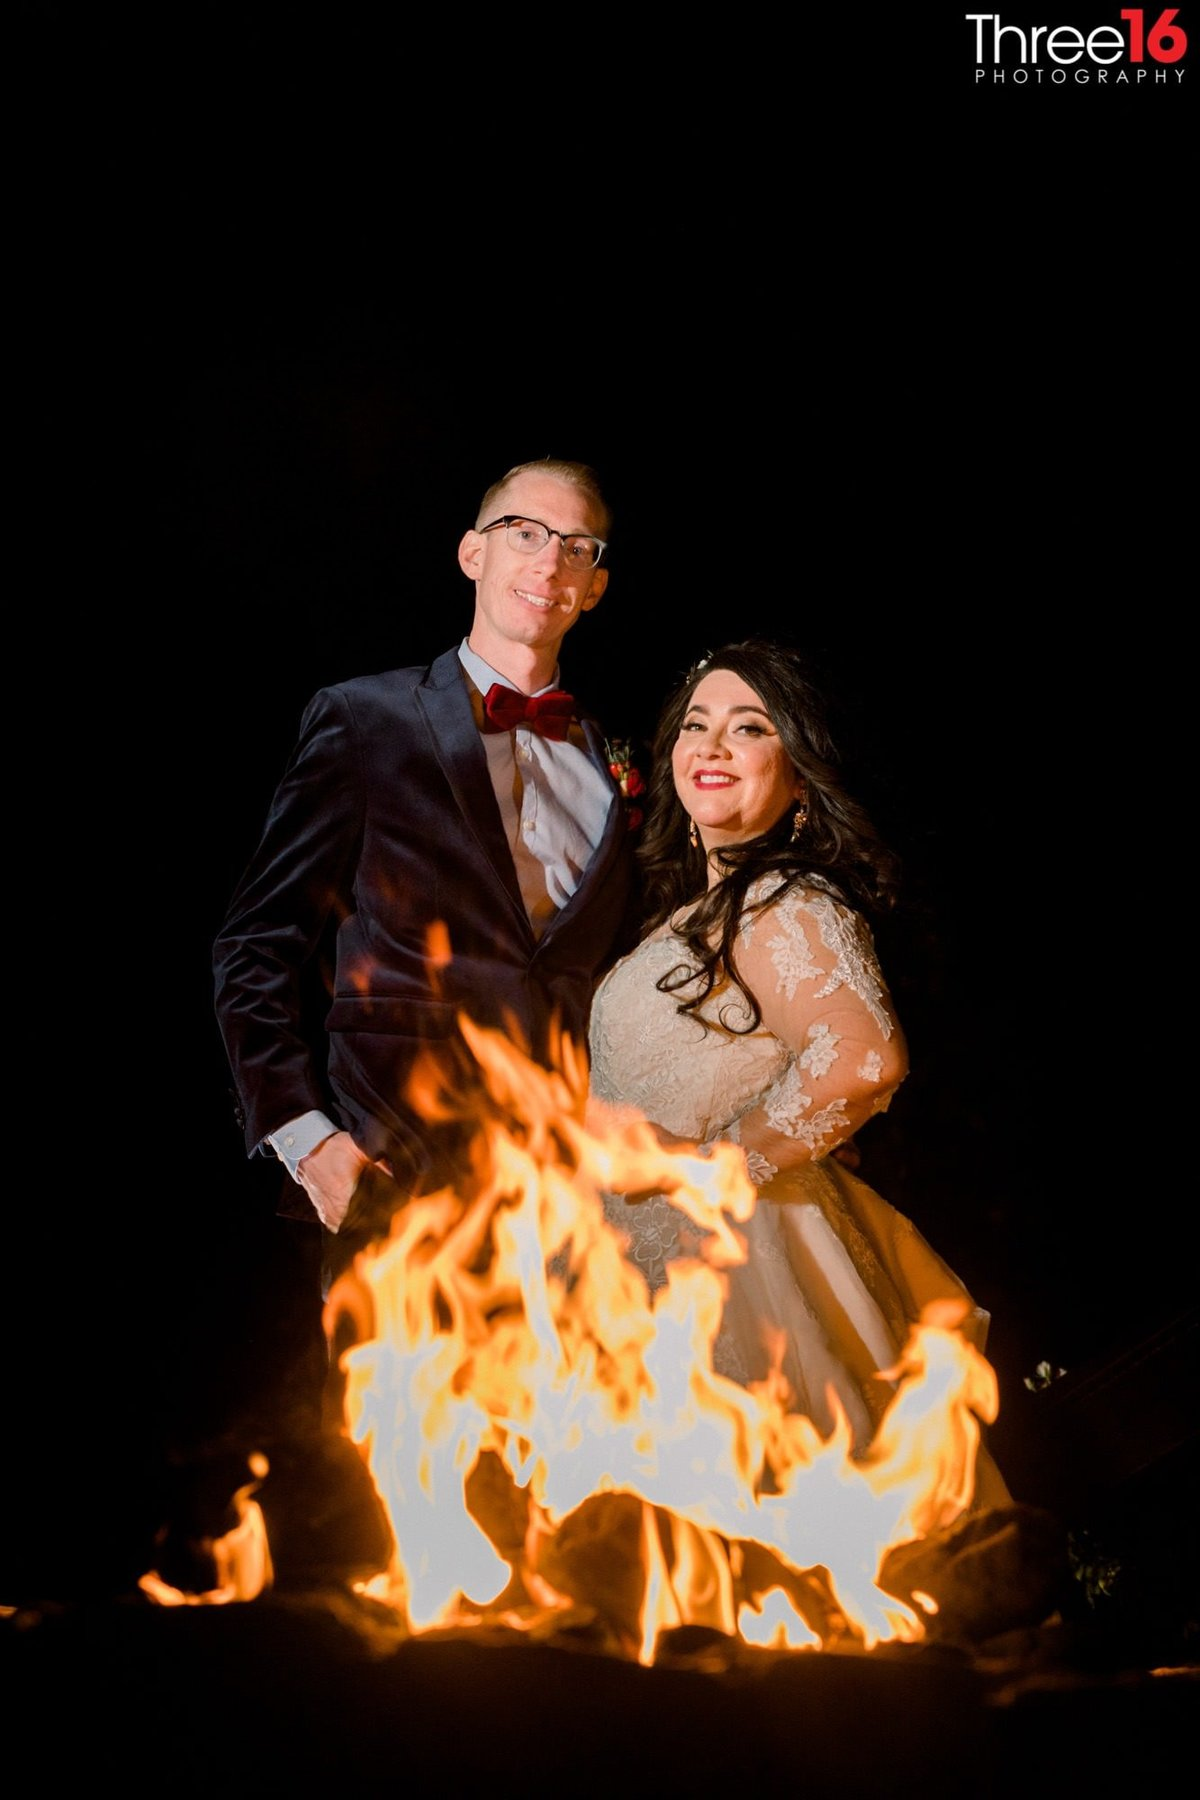 Bride and Groom pose behind a lit up fire pit